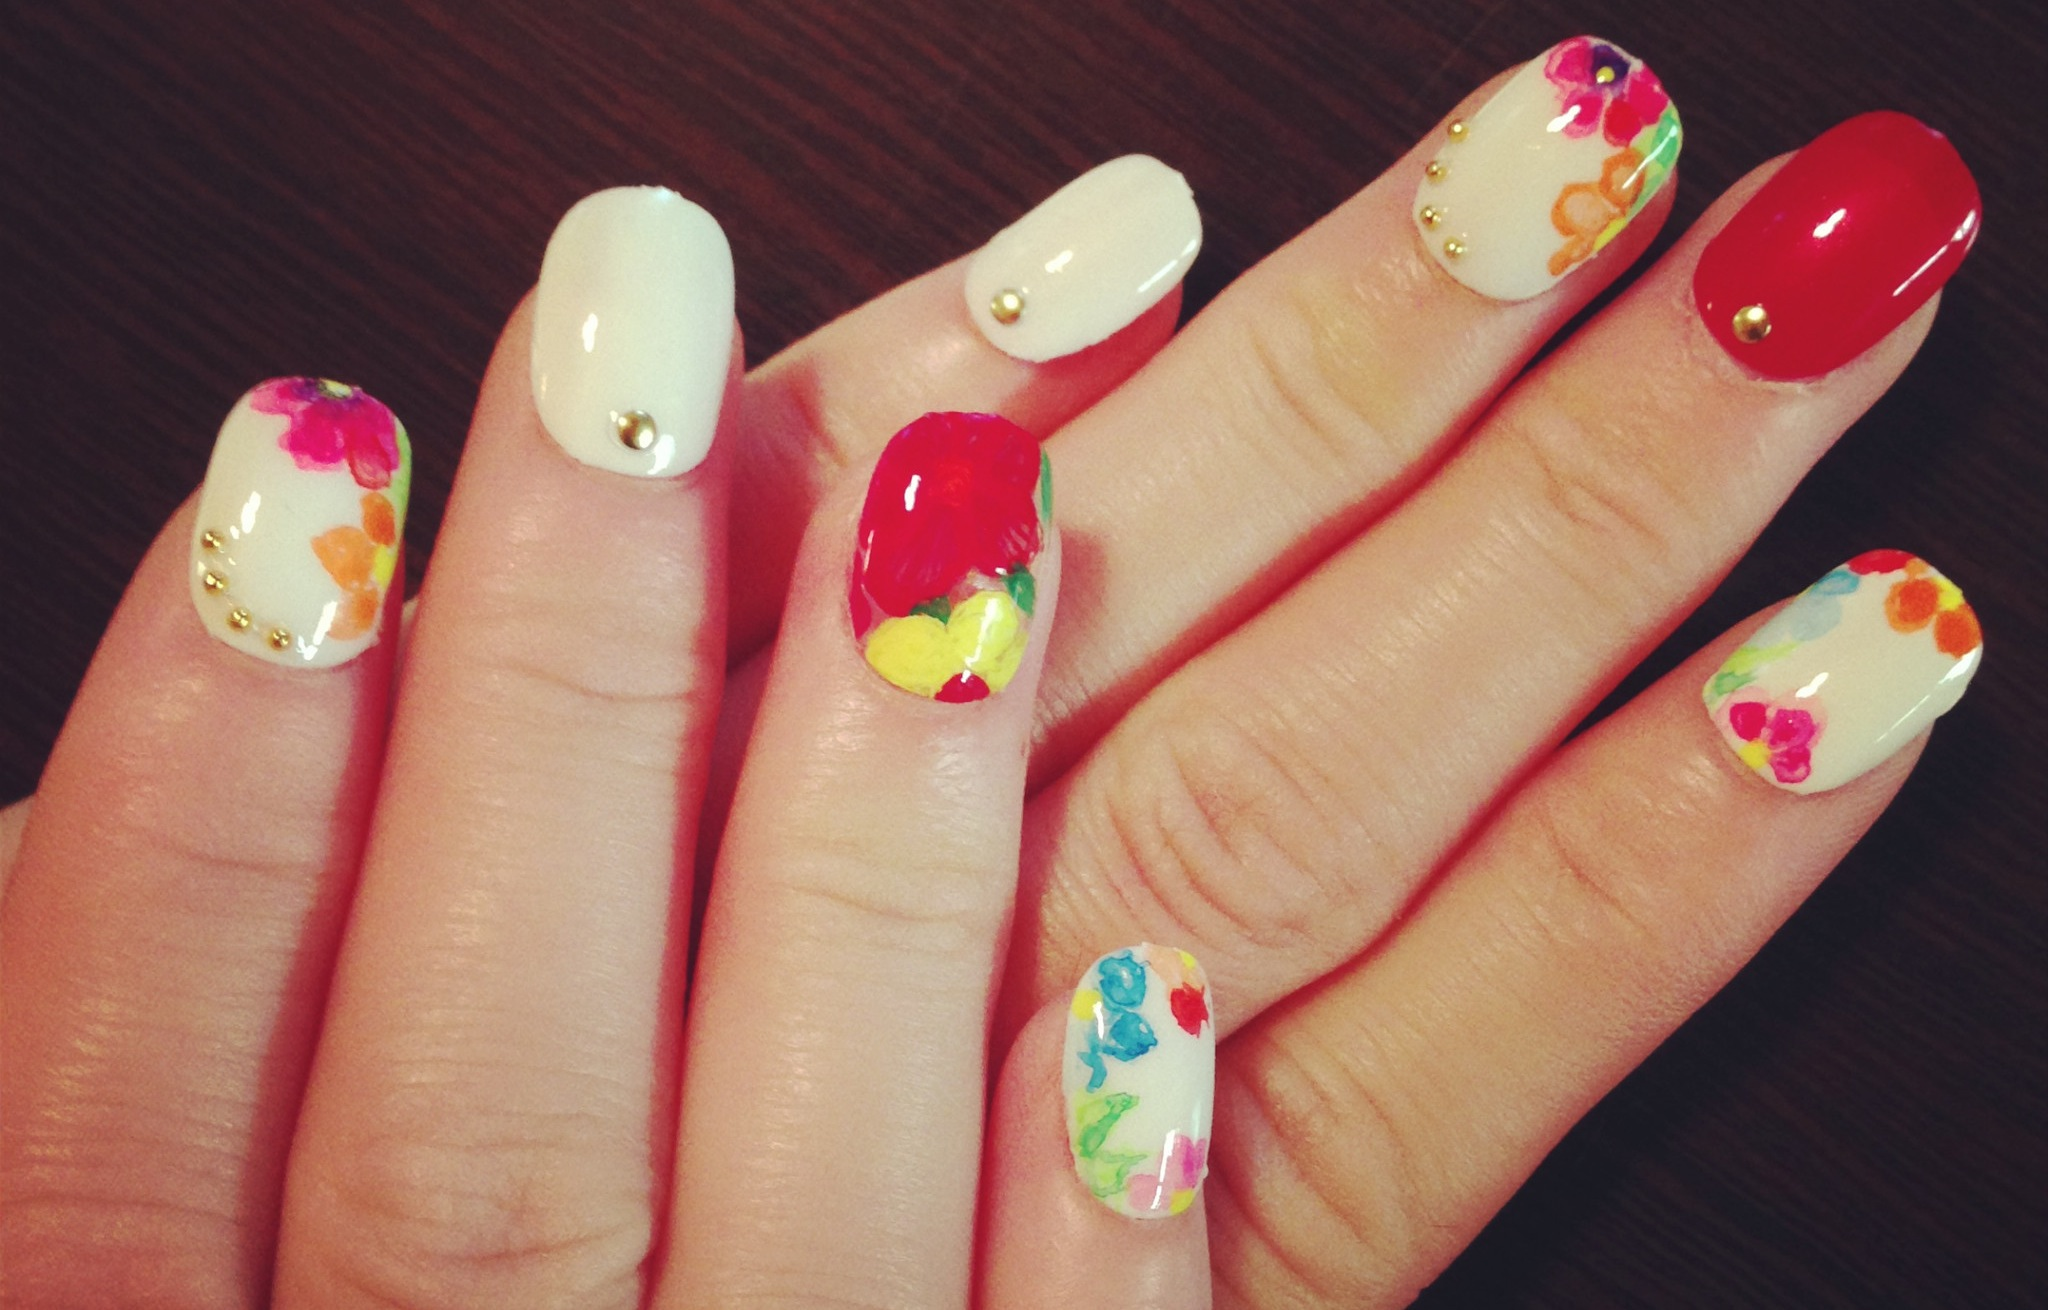 Nail art startup puts Cute Japan at your fingertips